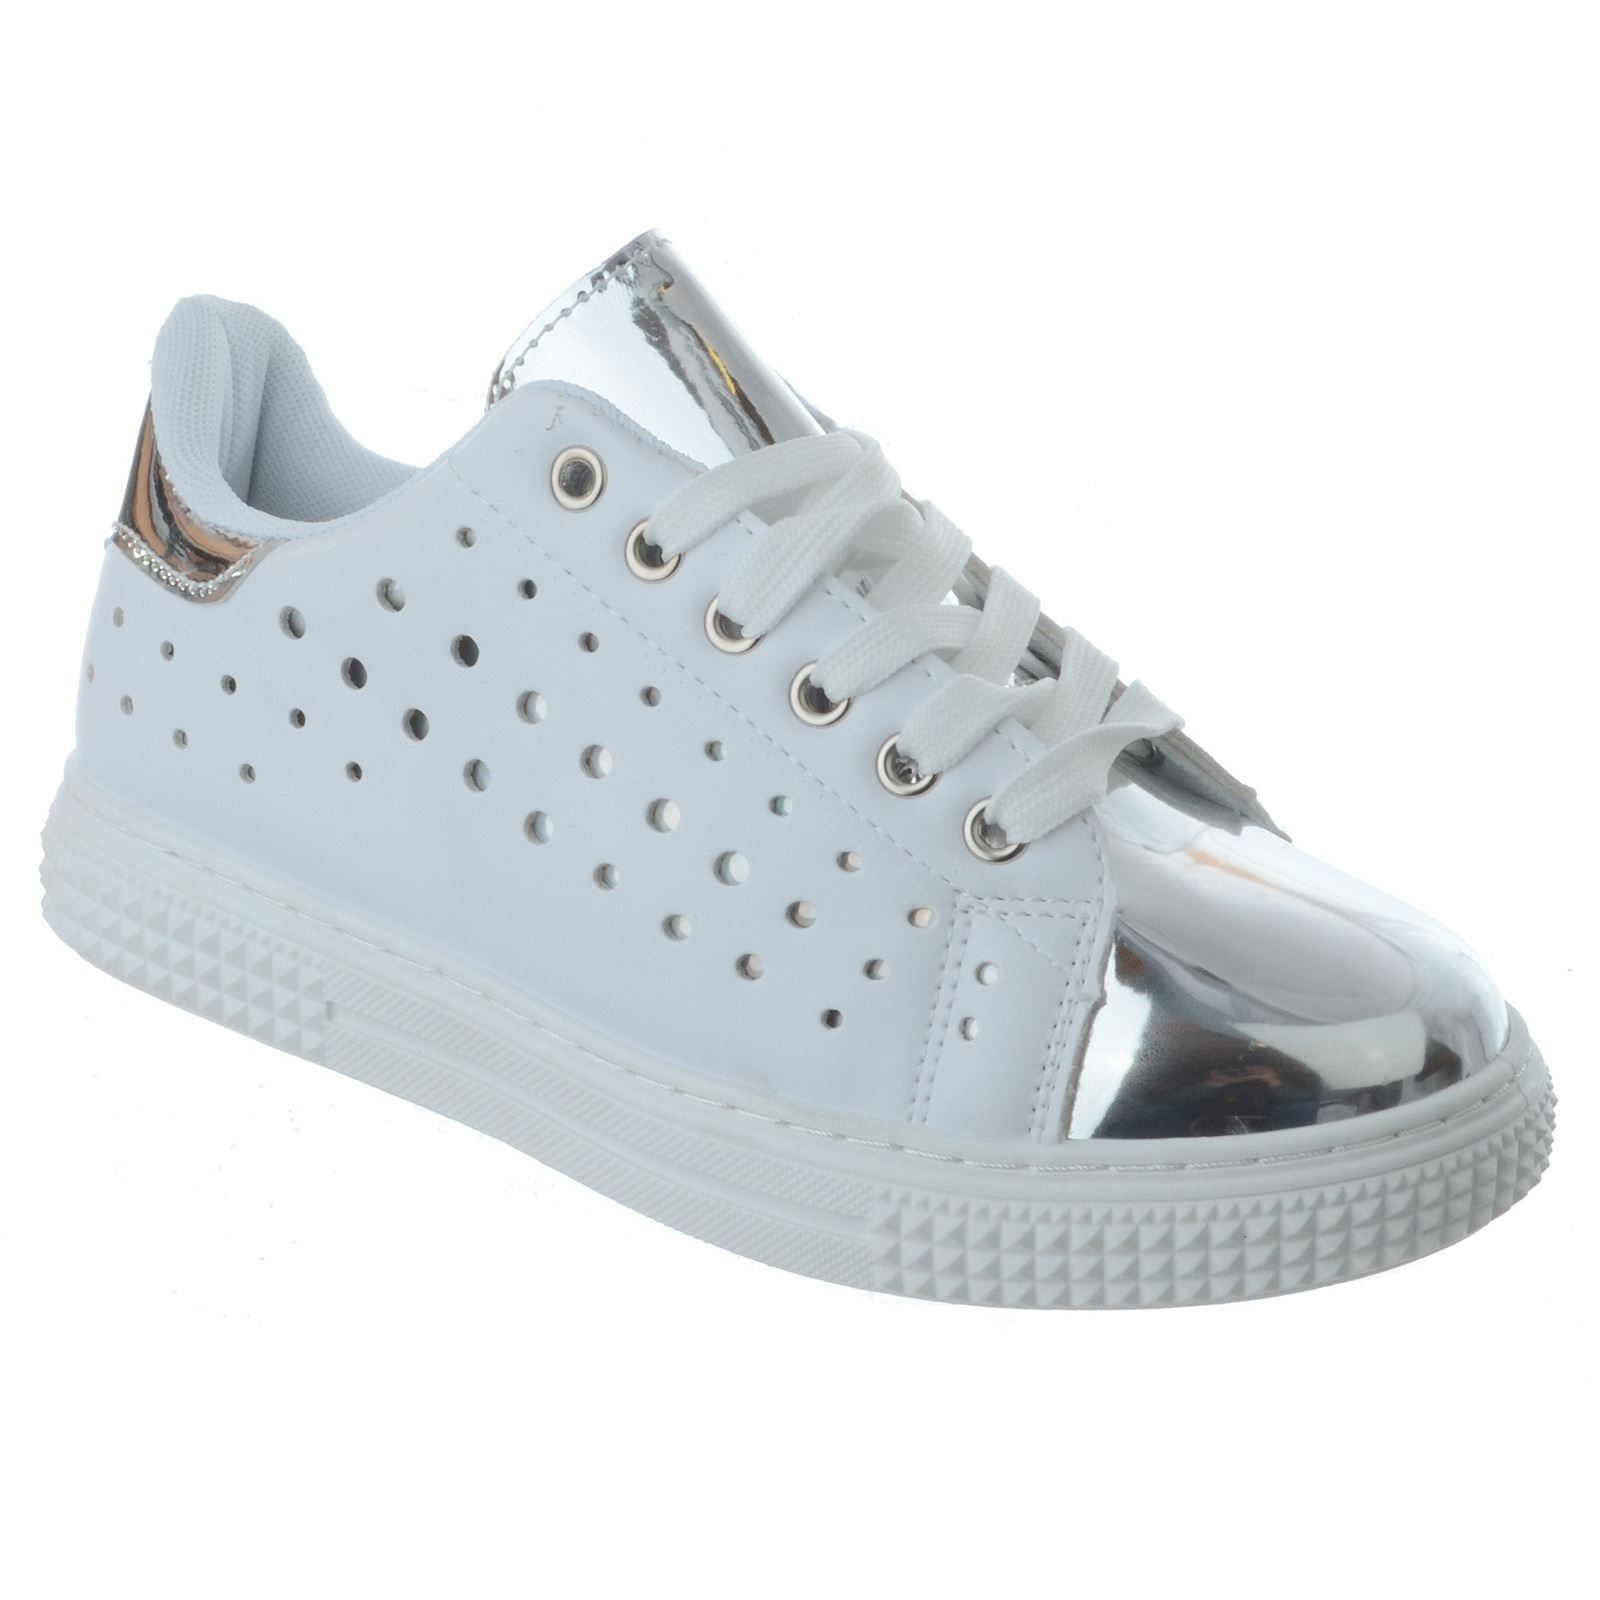 NEW LADIES FLAT LOW LACE UP TRAINERS Talla PUMPS Zapatos Mujer SNEAKERS Talla TRAINERS 8a11a7